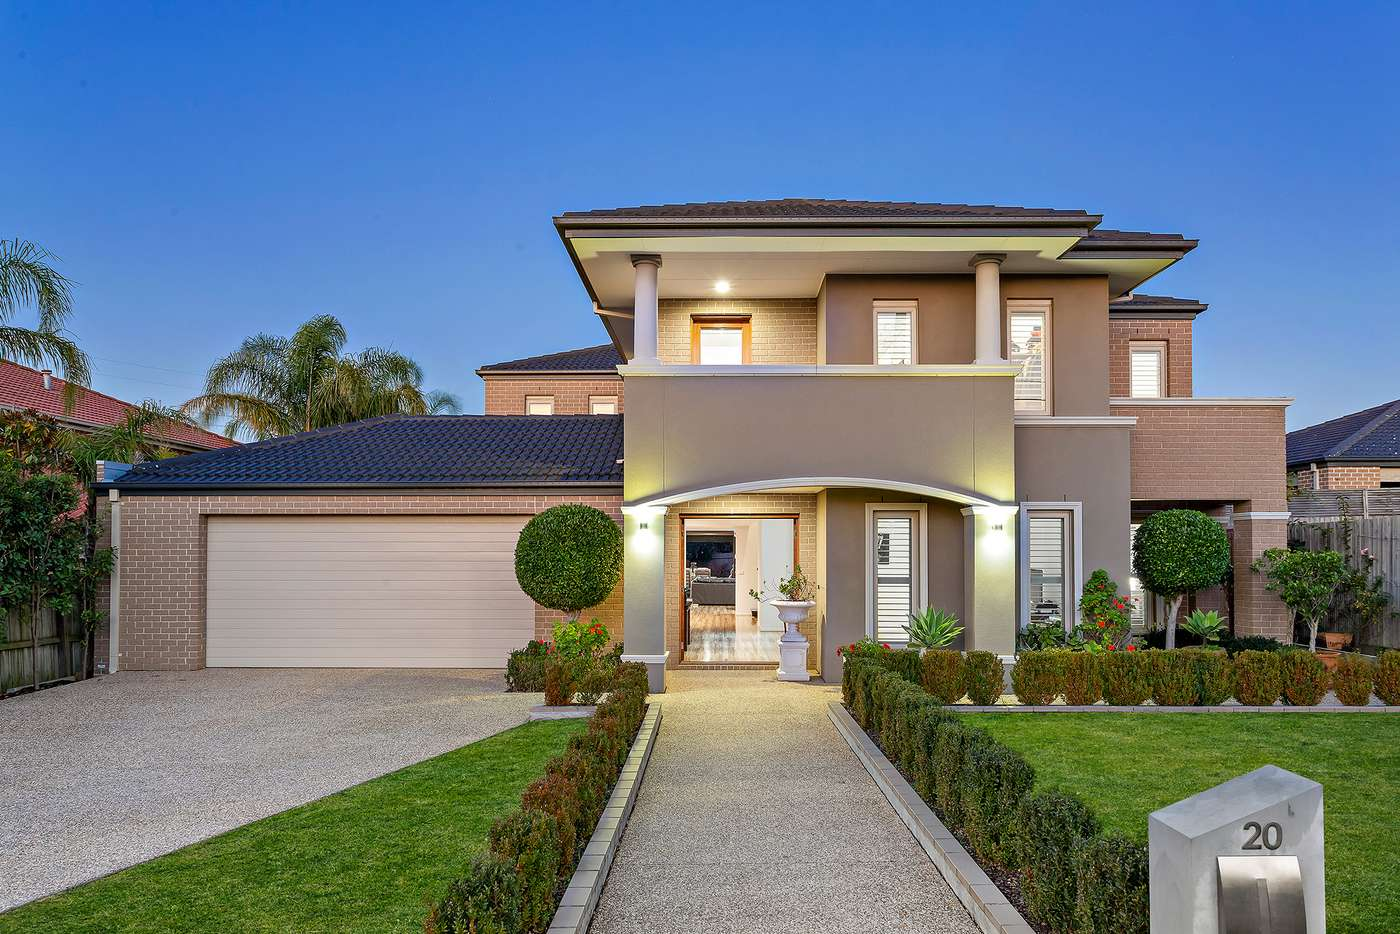 Main view of Homely house listing, 20 Durward Road, Malvern East VIC 3145